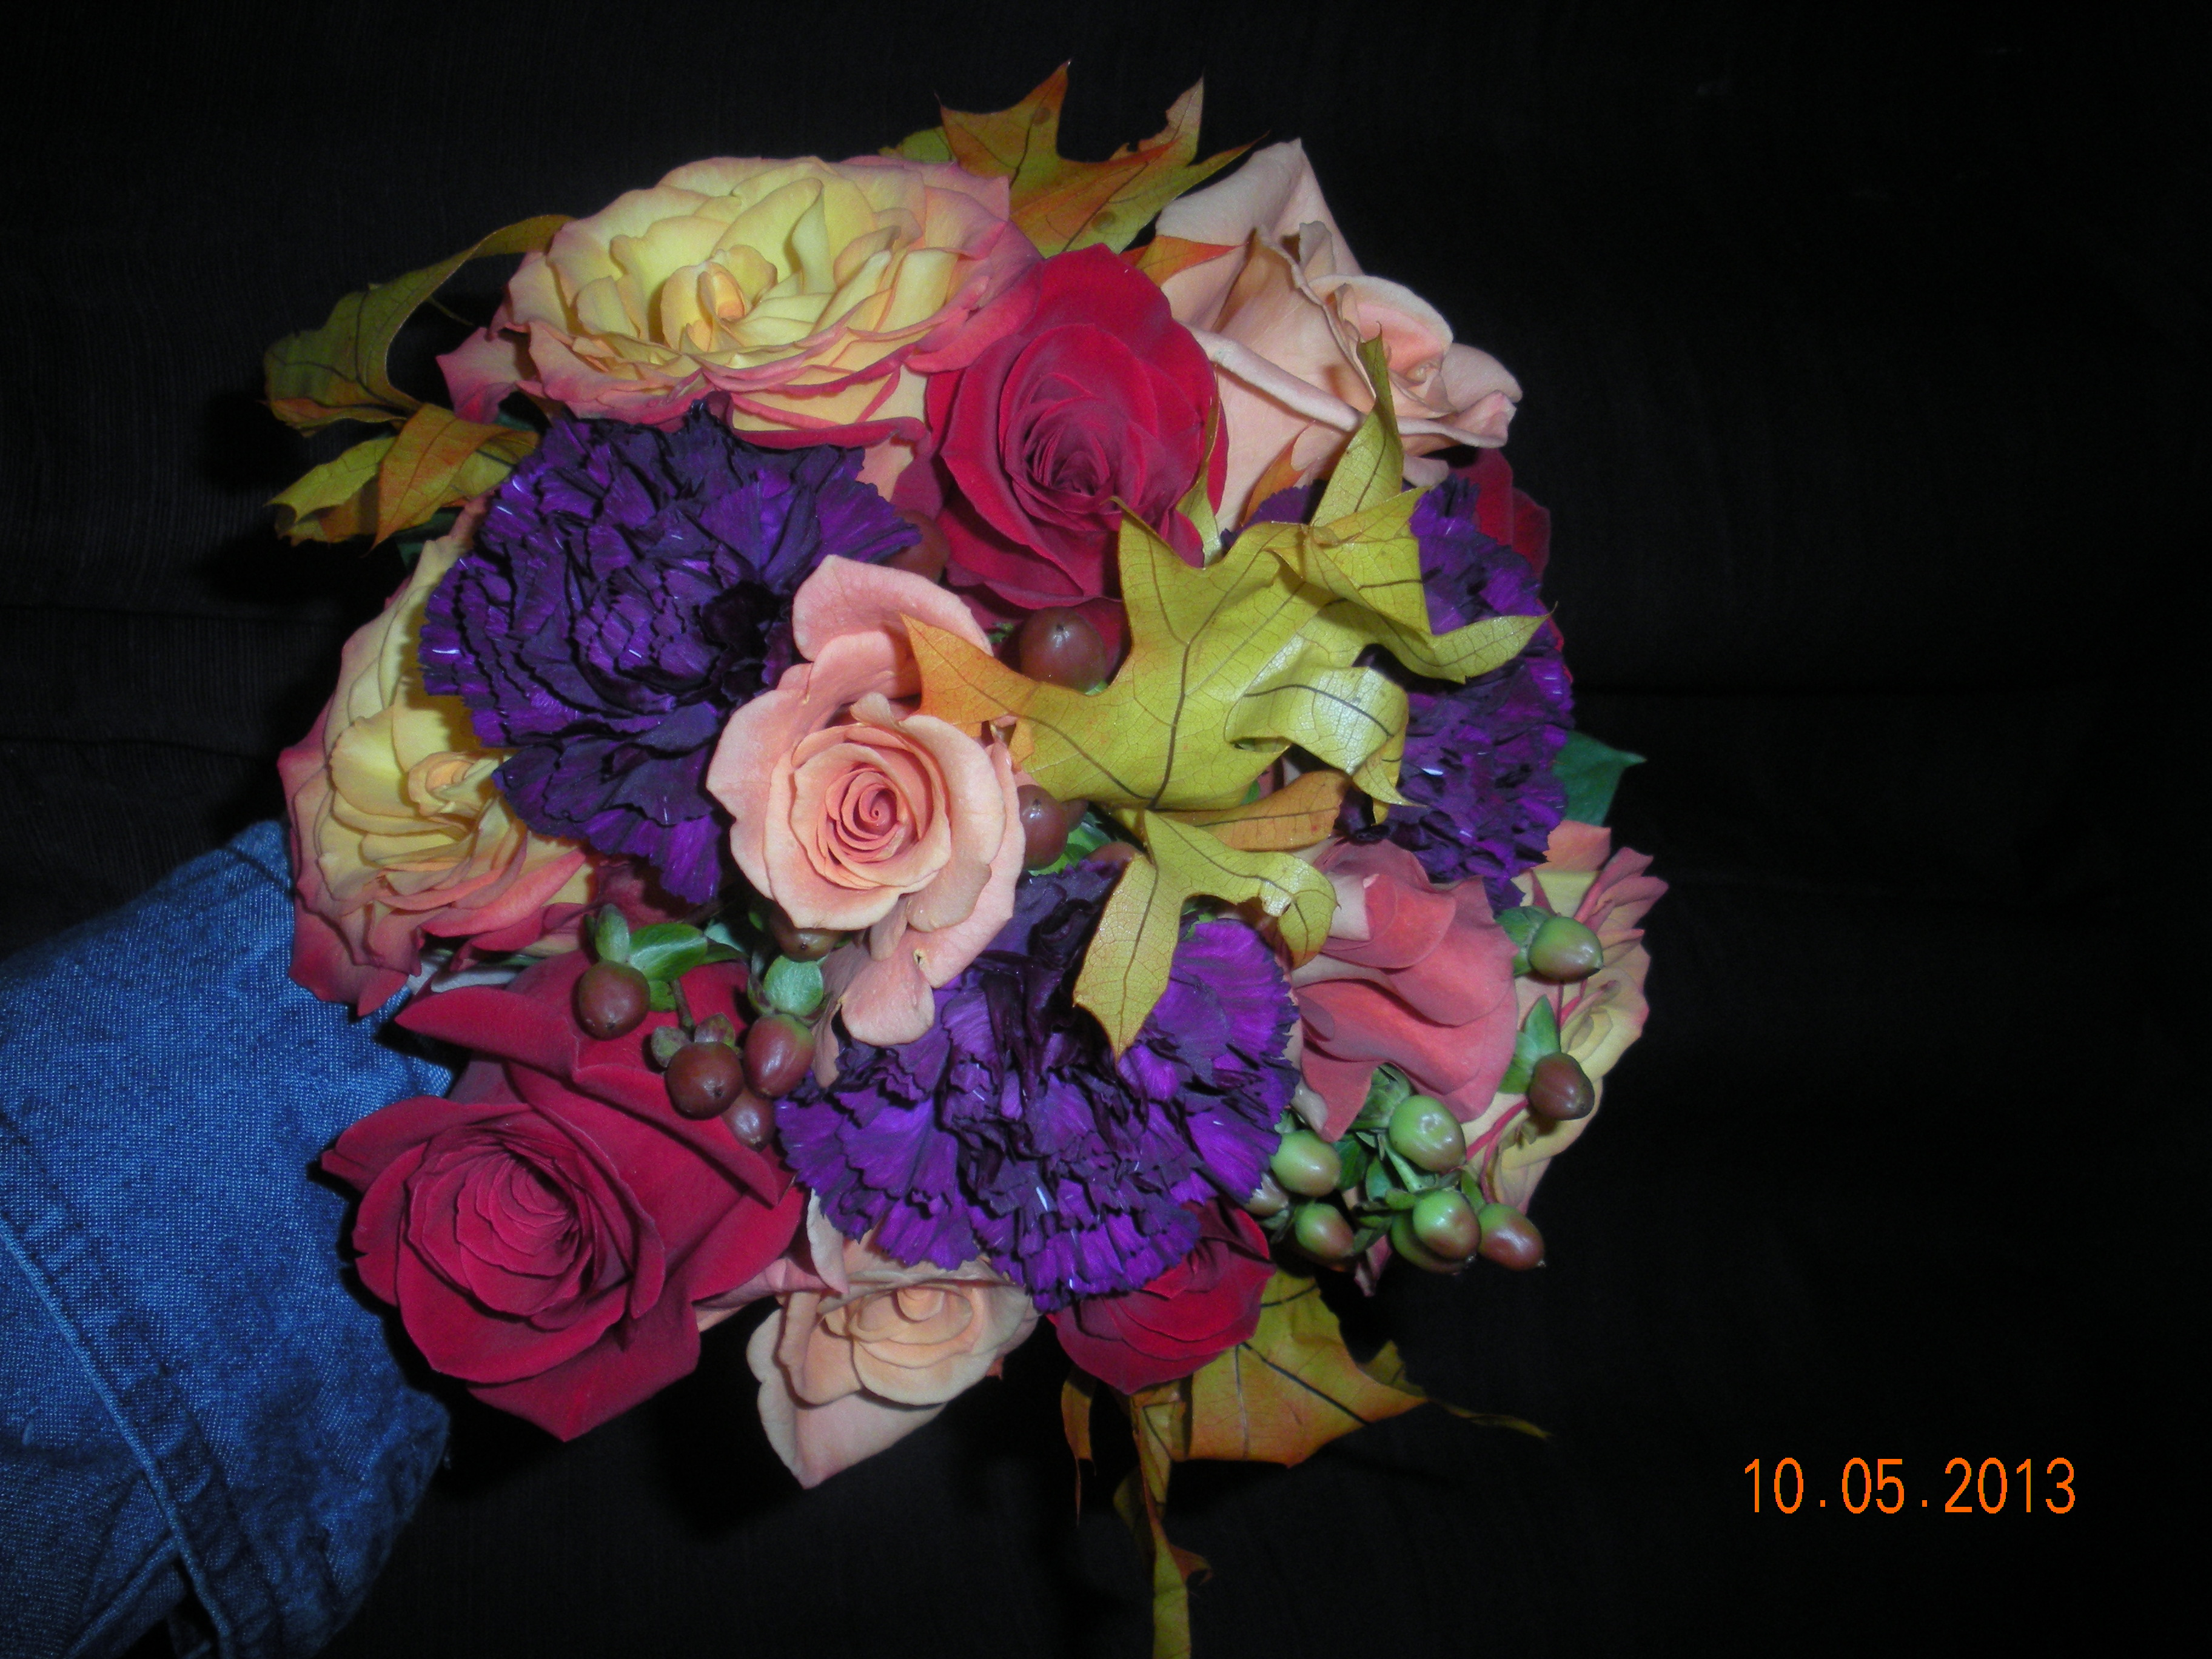 Terrys floral treasures 2120 long pond rd rochester ny 14606 yp izmirmasajfo